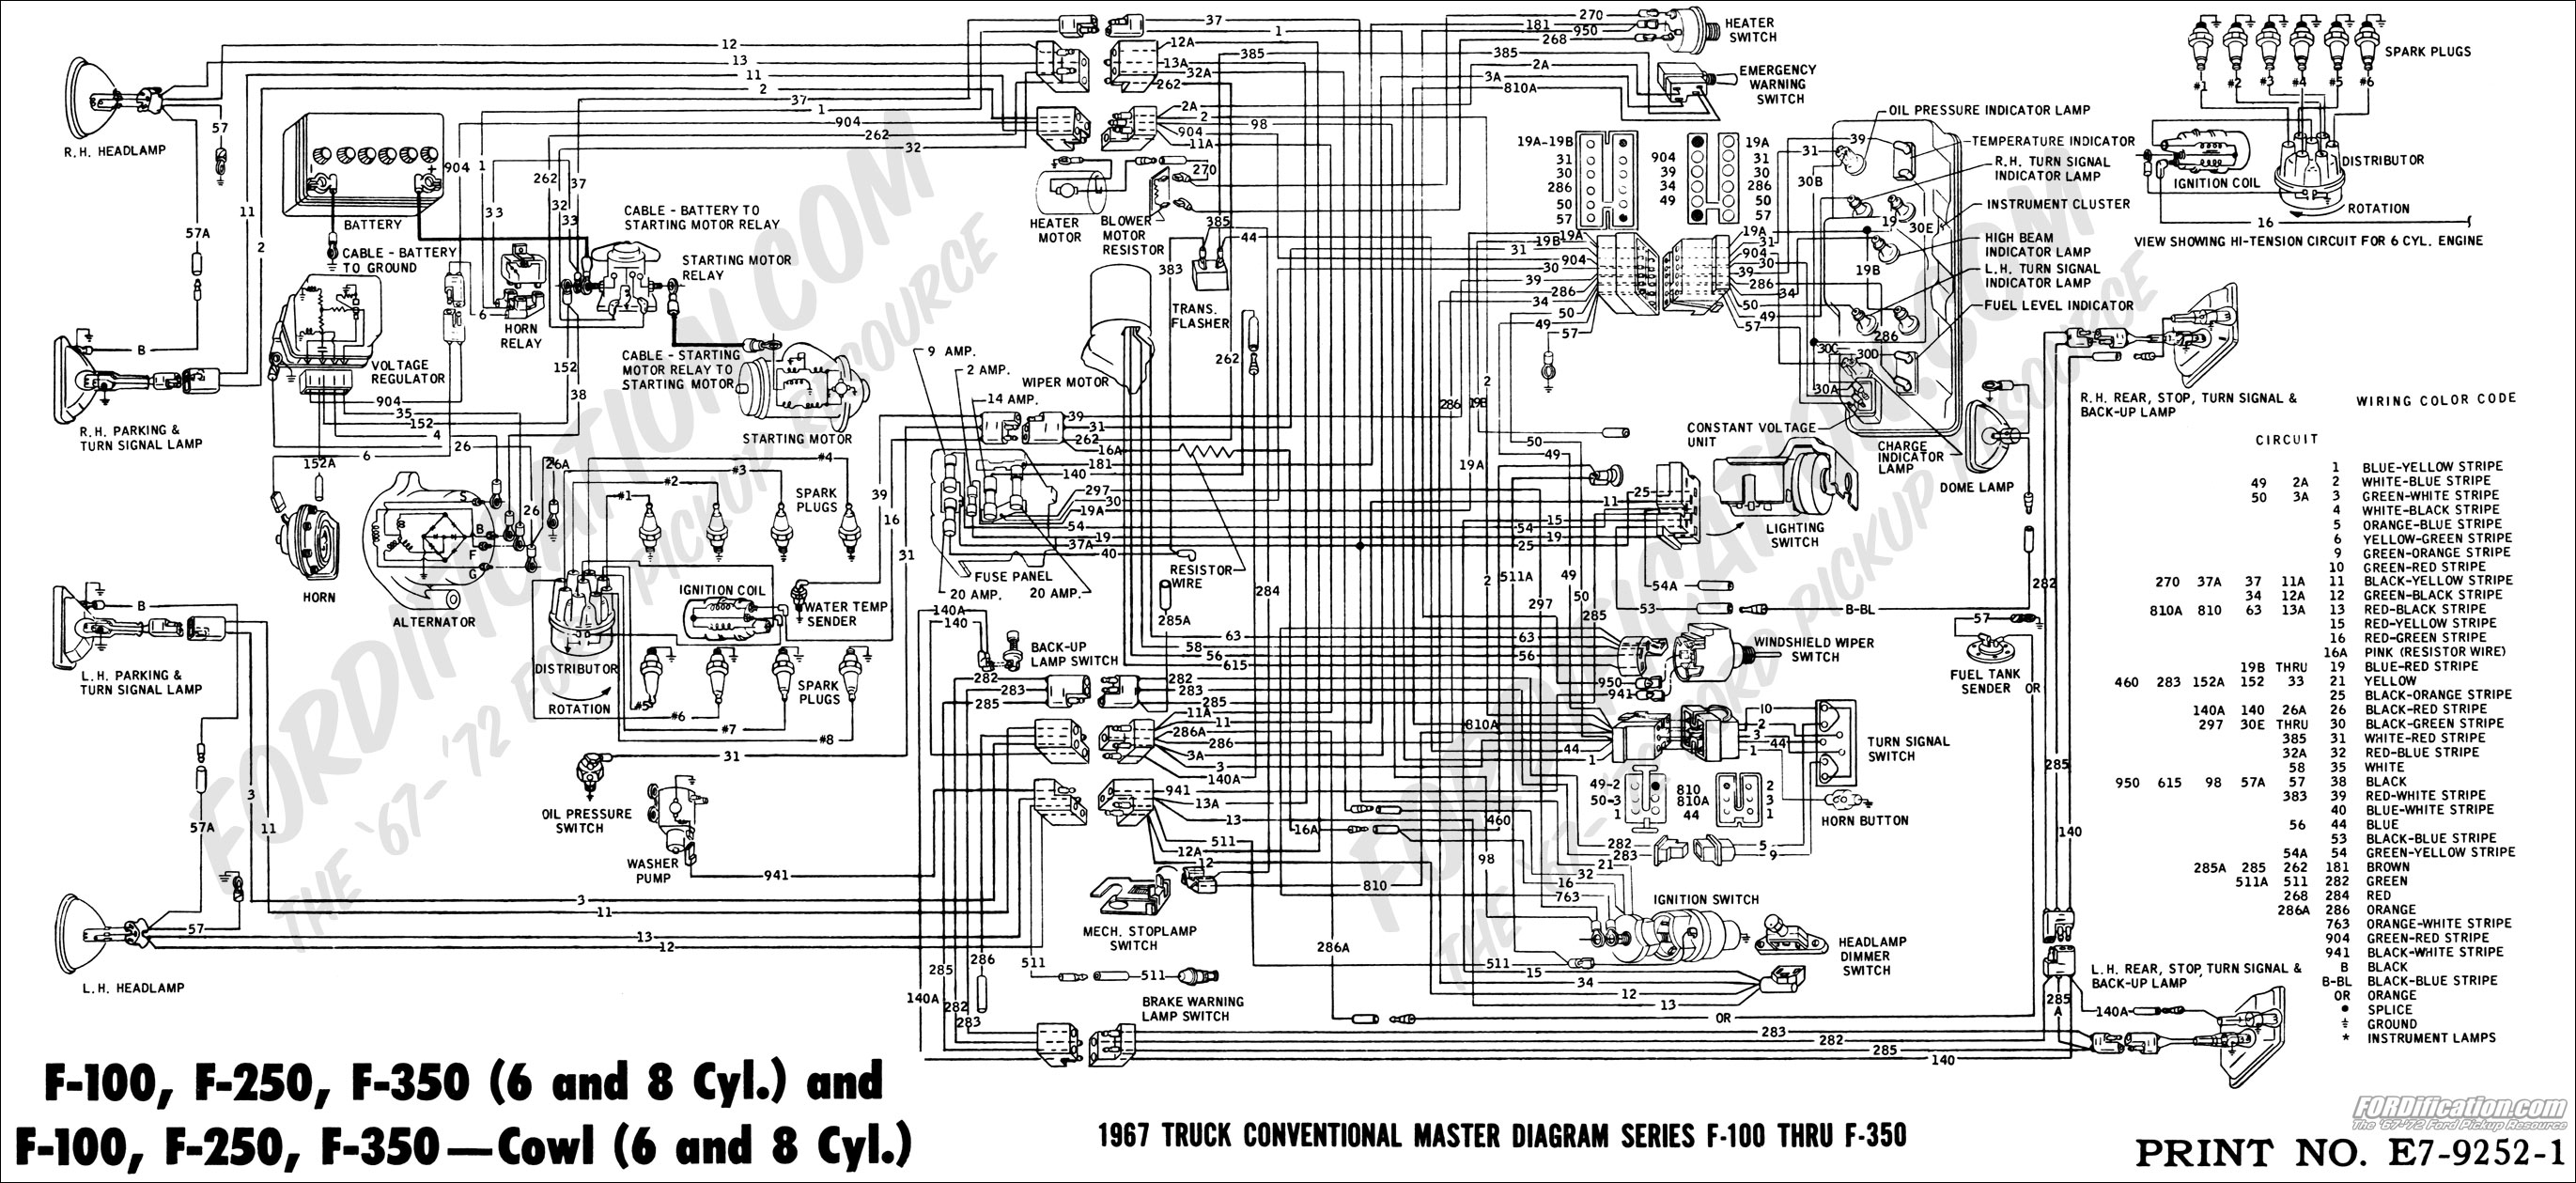 1983 Ford Alternator Regulator Wiring Today Diagram Gm Delco Bose Page 2 Testing And